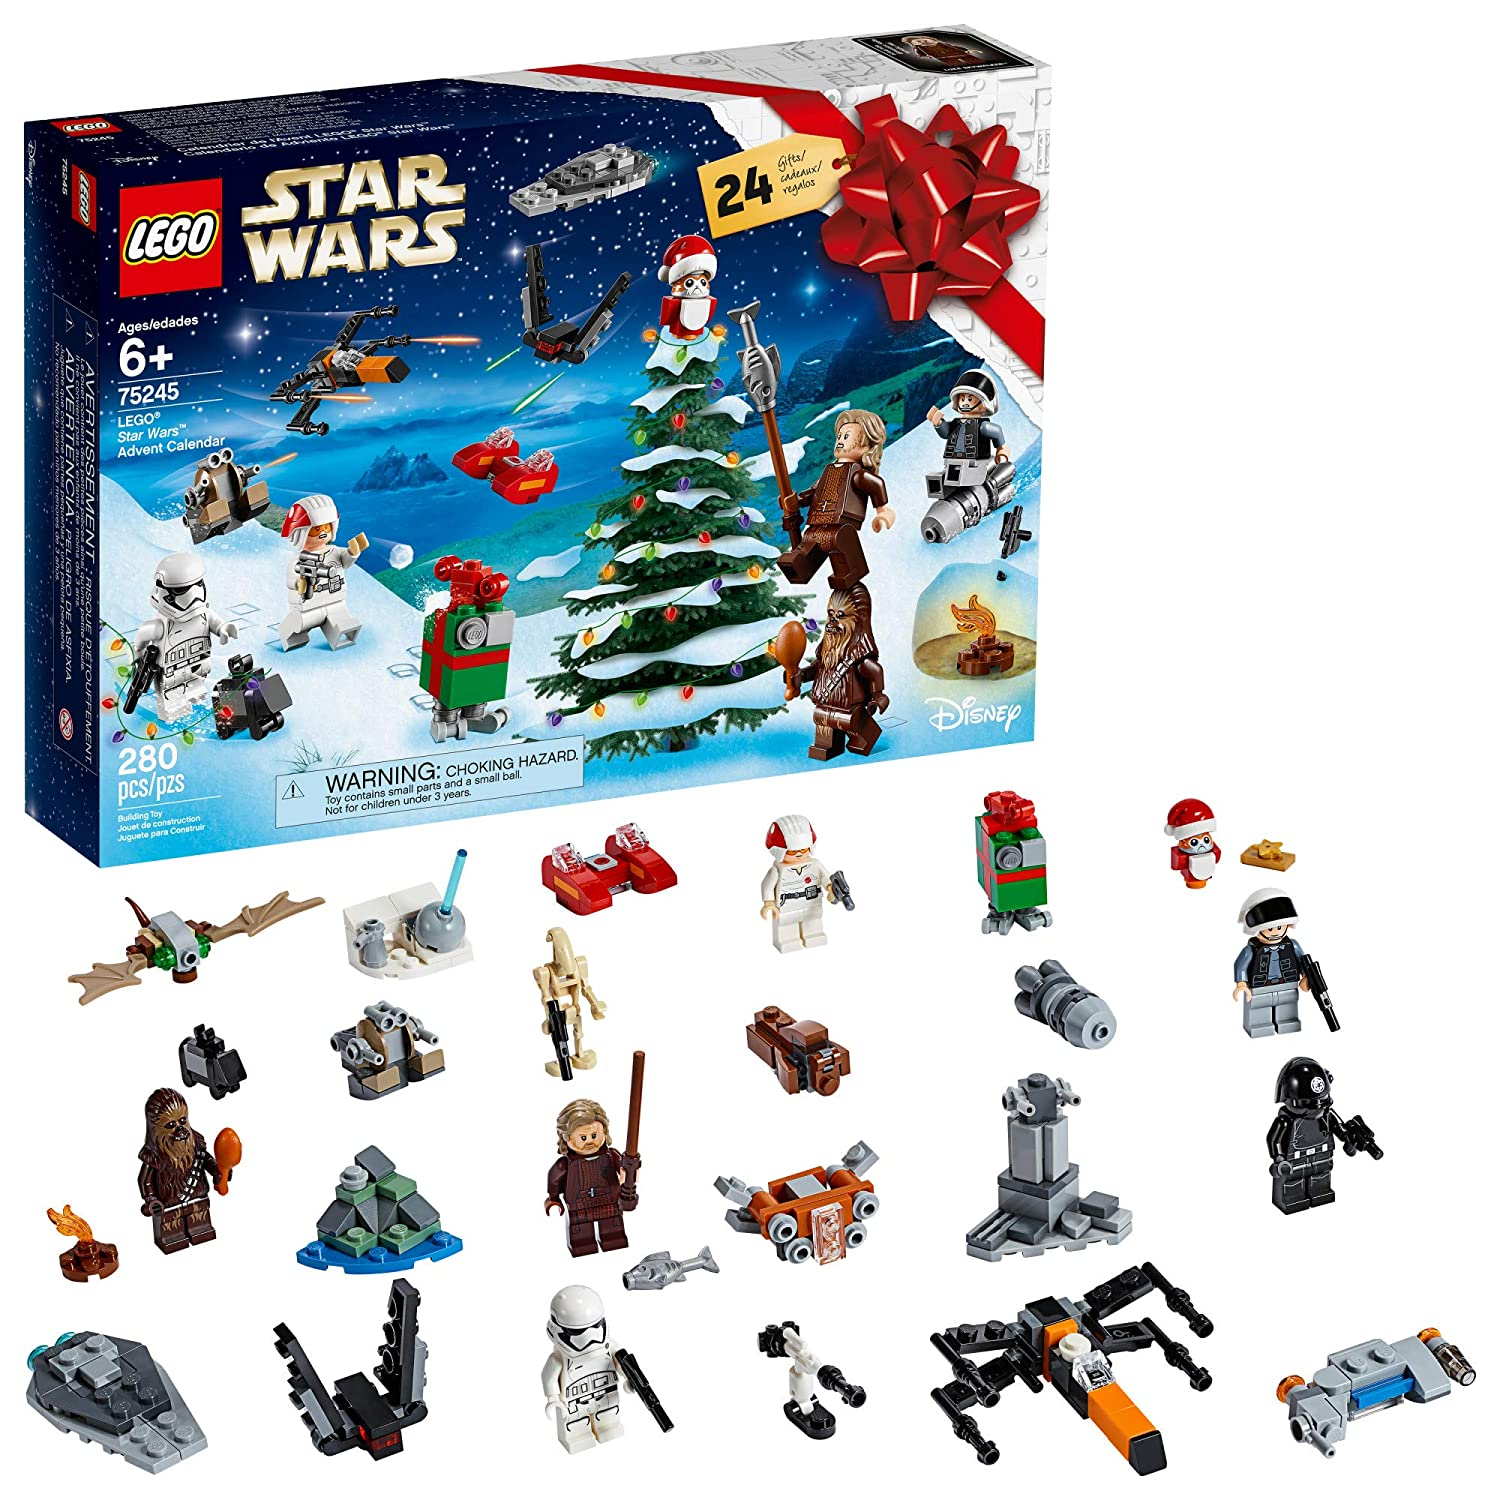 Calendrier Star Wars 2019.Lego Star Wars 2019 Advent Calendar 75245 Holiday Gift Set Building Kit With Star Wars Minifigure Characters 280 Pieces